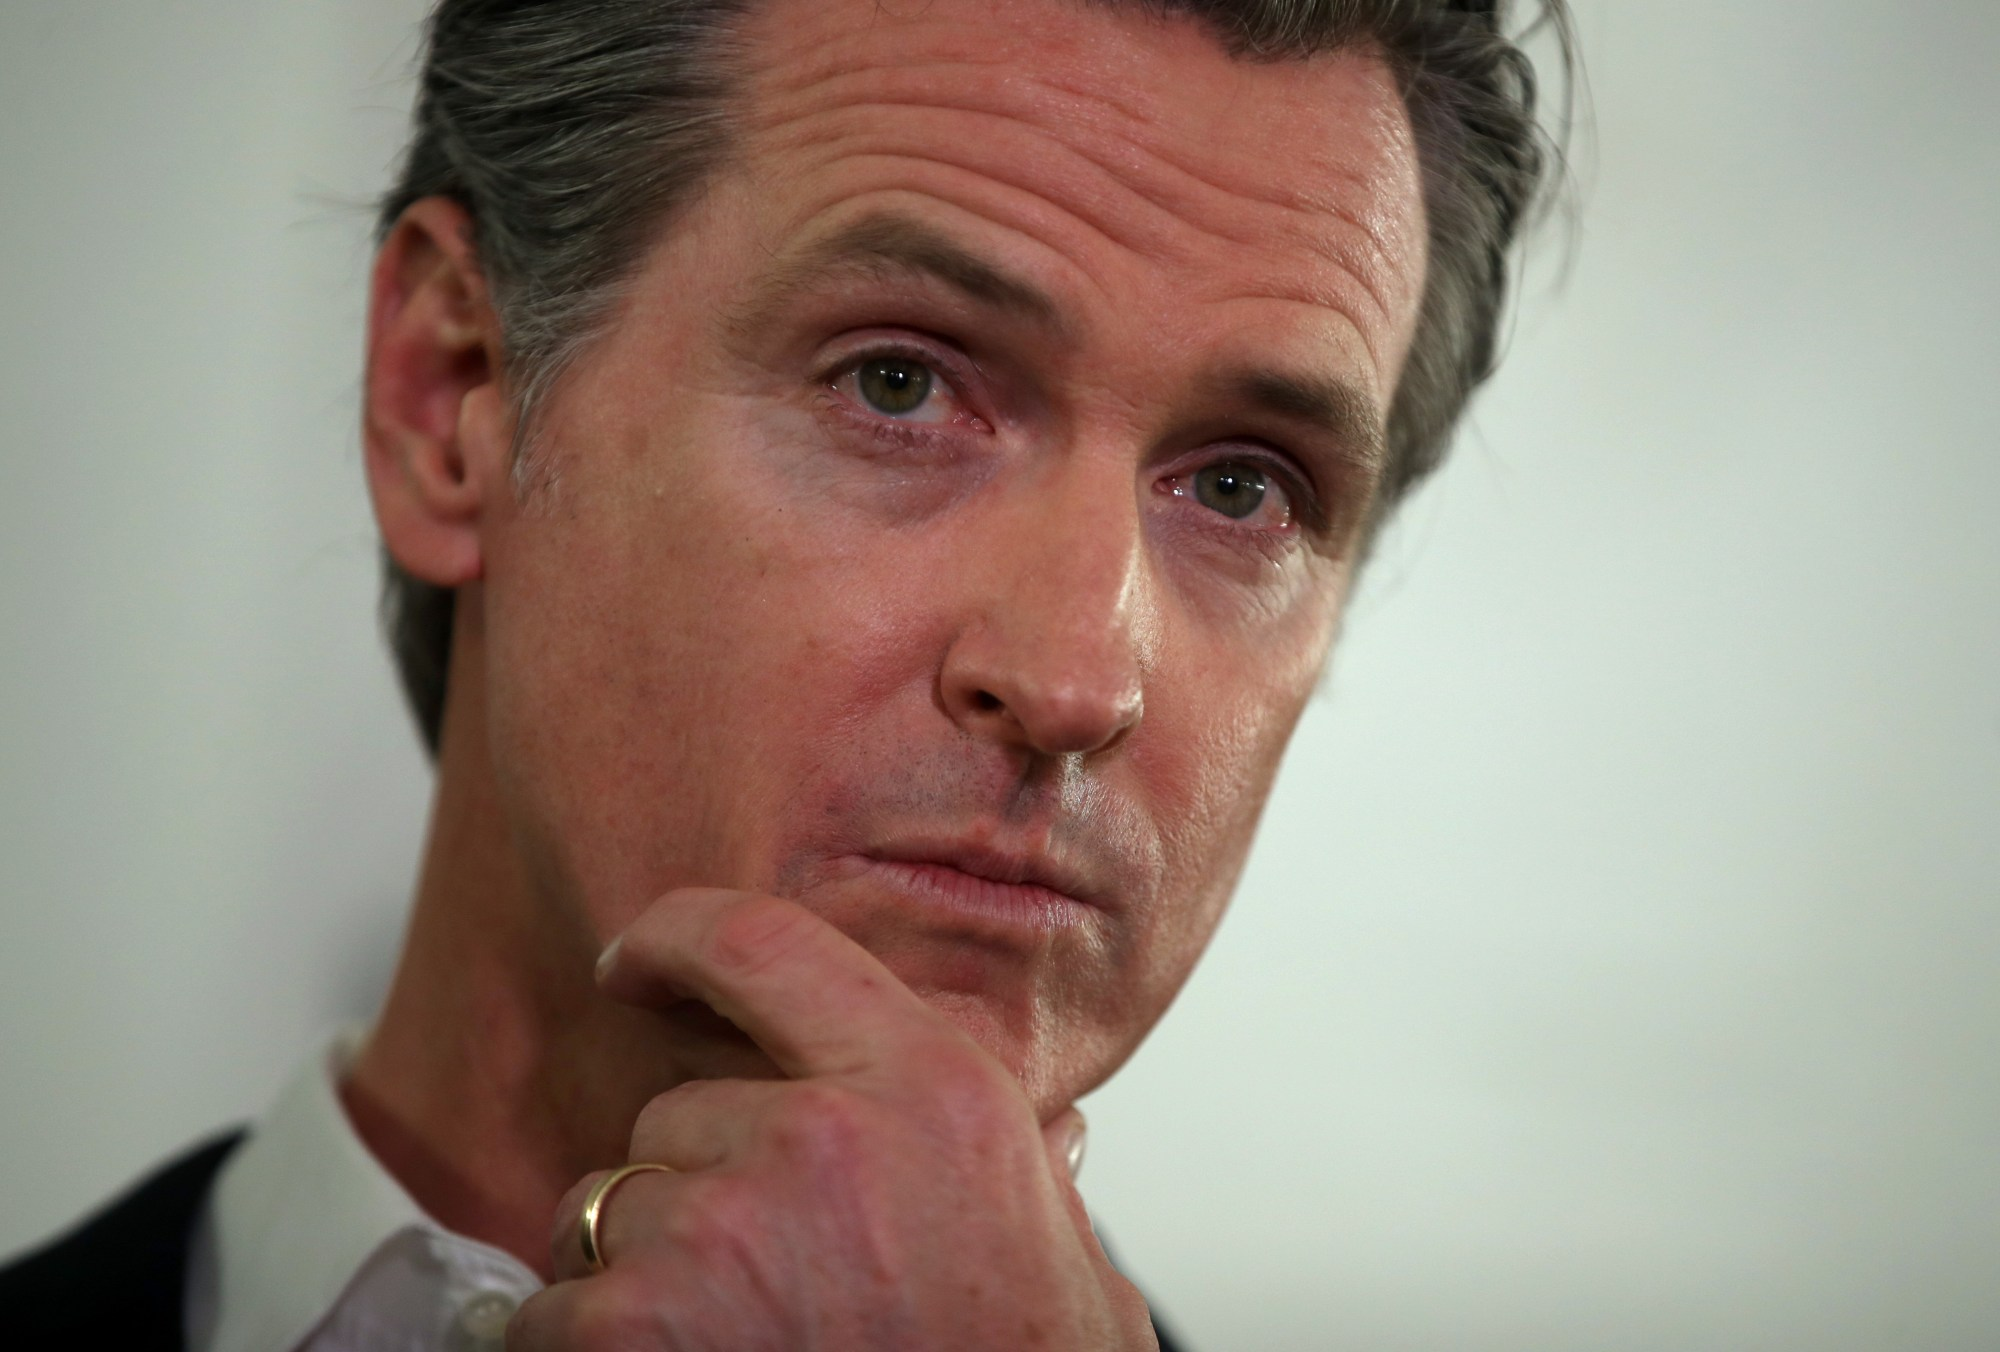 California Gov. Gavin Newsom looks on during a a news conference Jan. 16, 2020, in Oakland (Justin Sullivan/Getty Images)